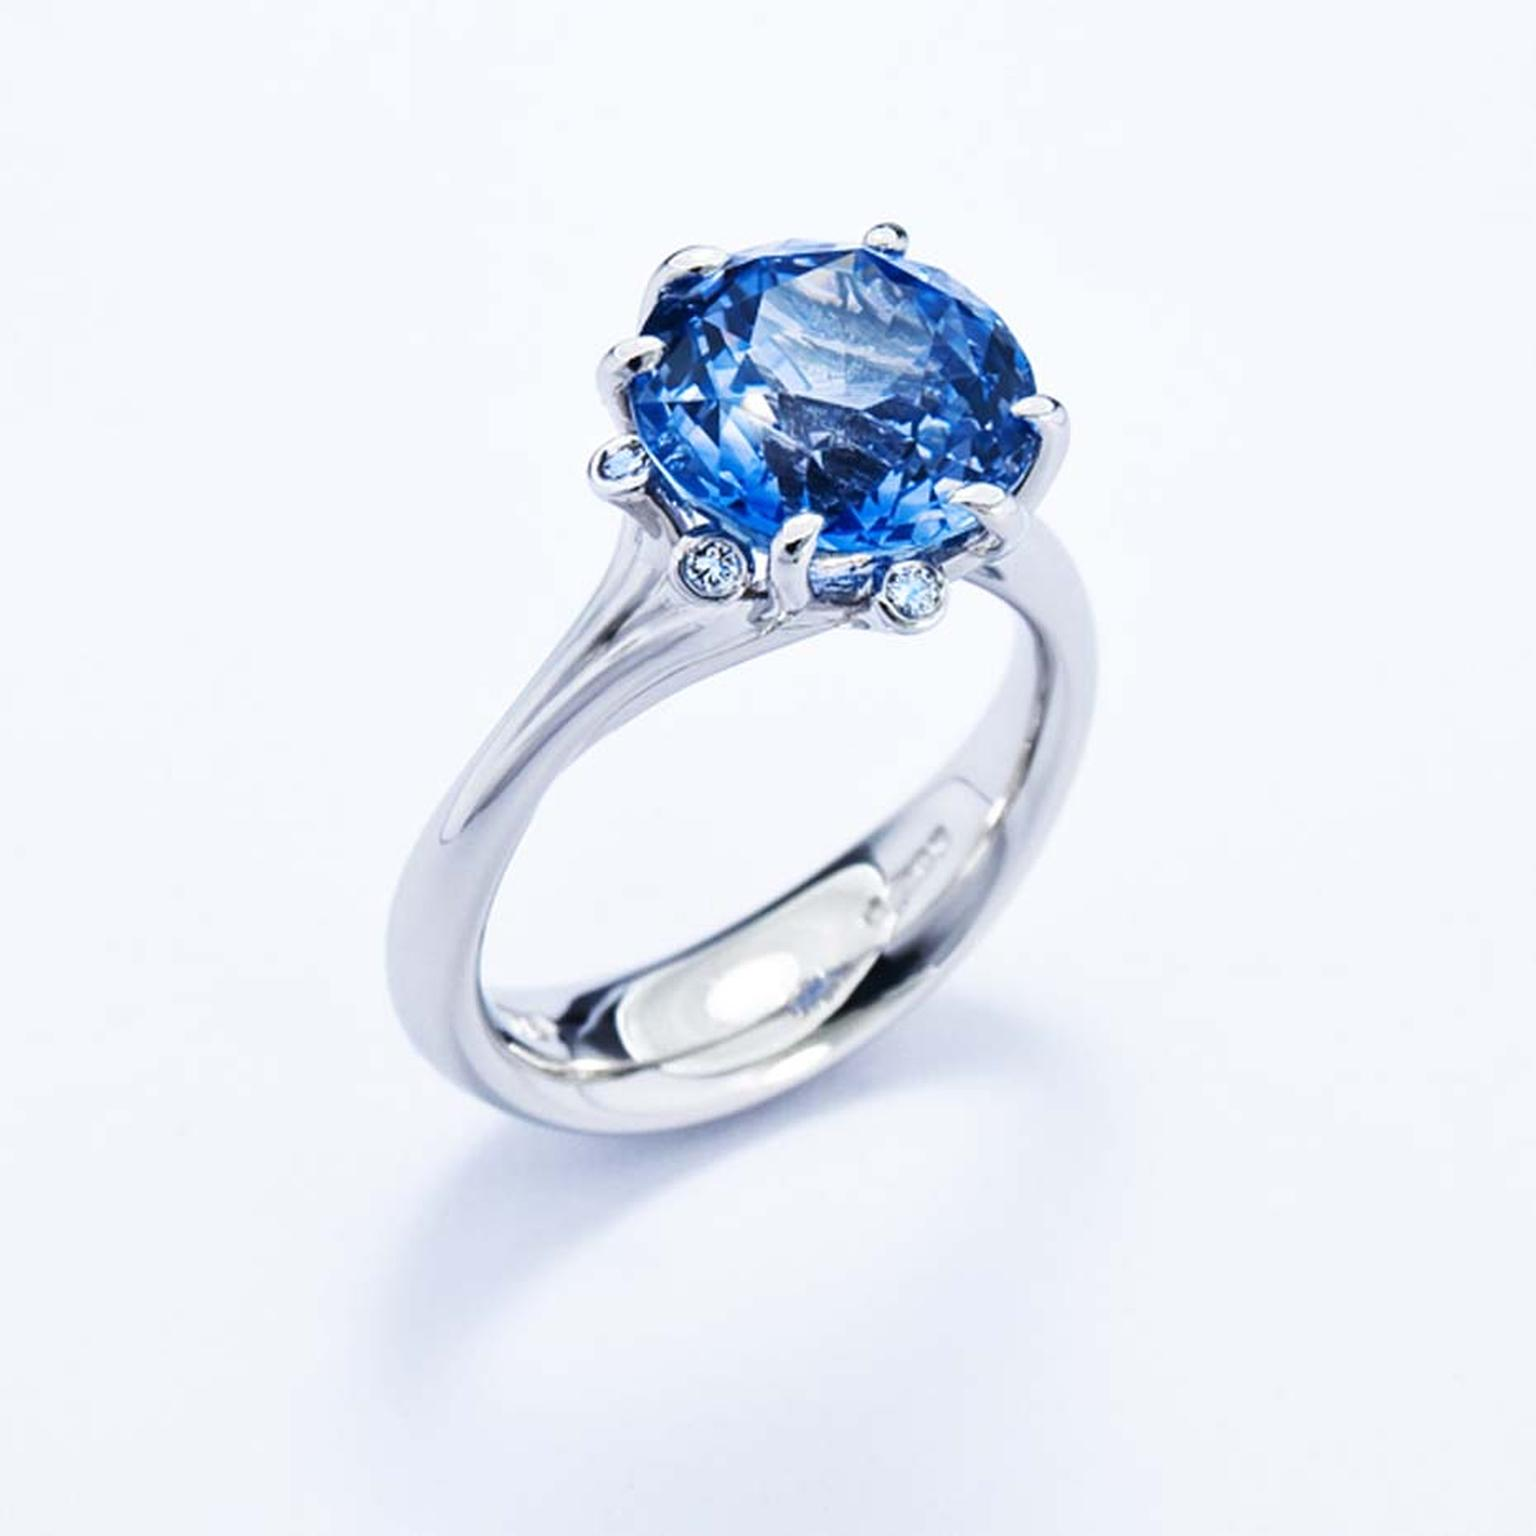 Jon Dibben Meadow ring with a centre sapphire set in platinum.